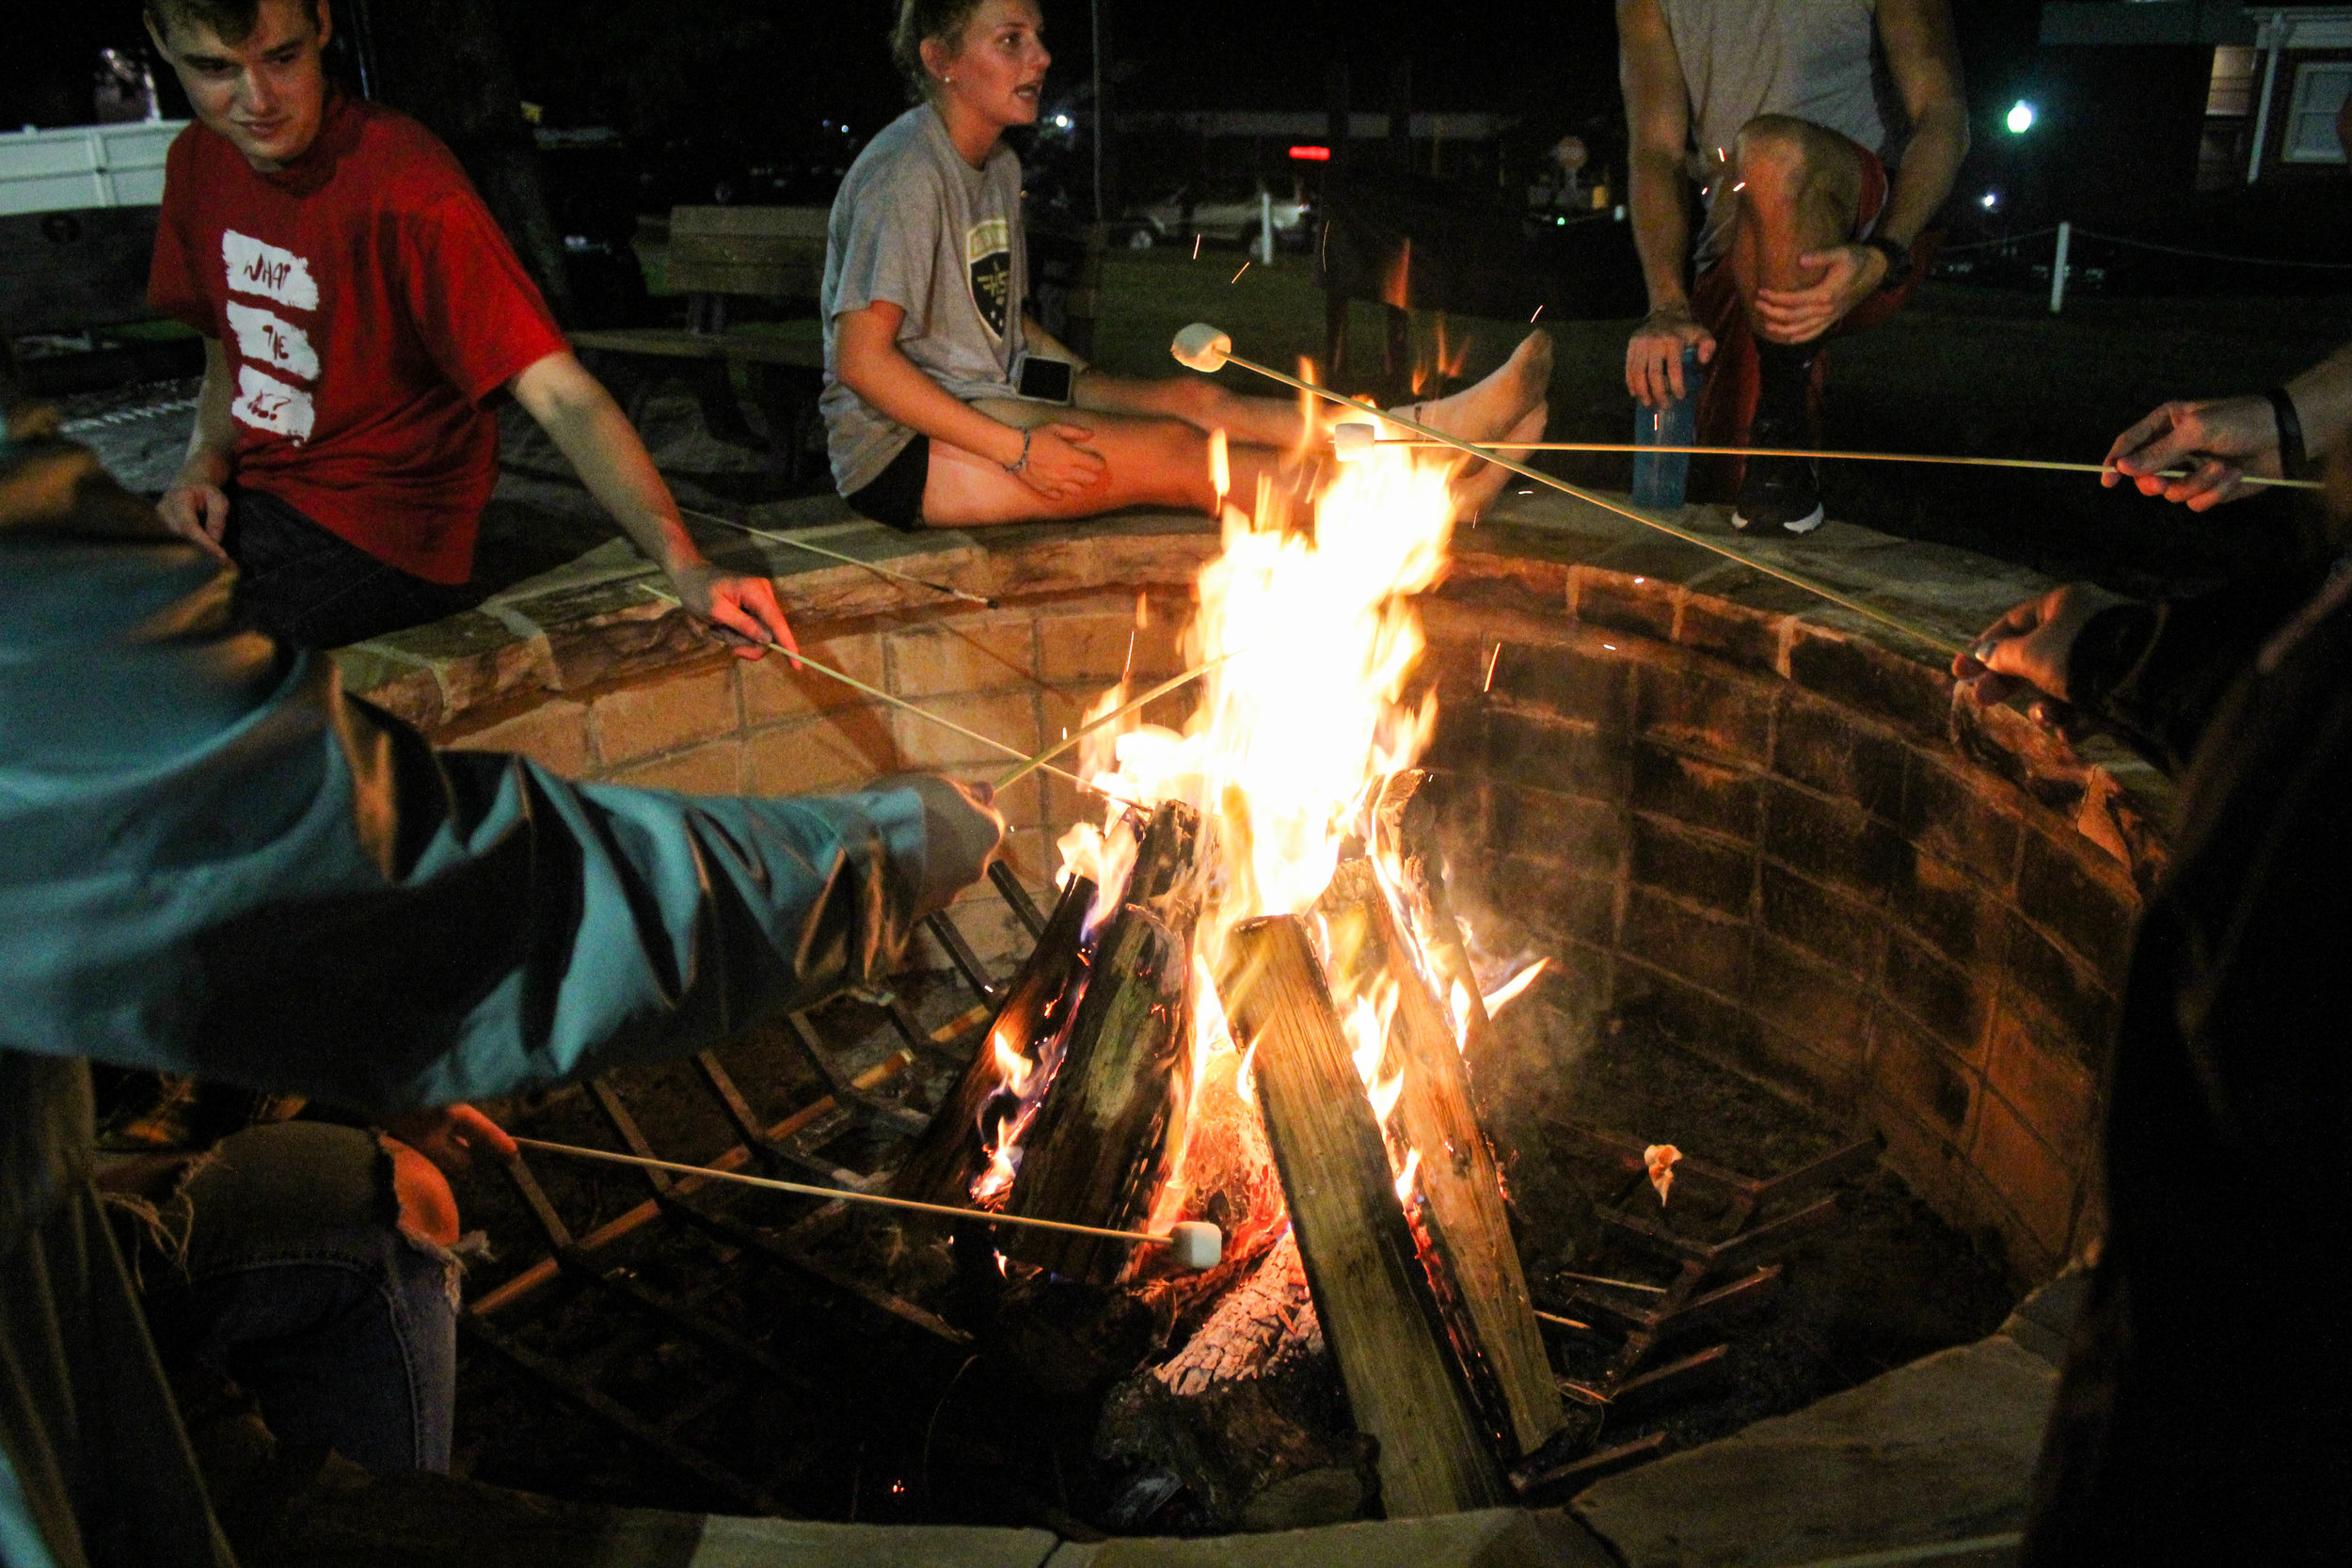 Students gather around the fire pit and roast marshmallows to make s'mores while the watch the volleyball tournament.